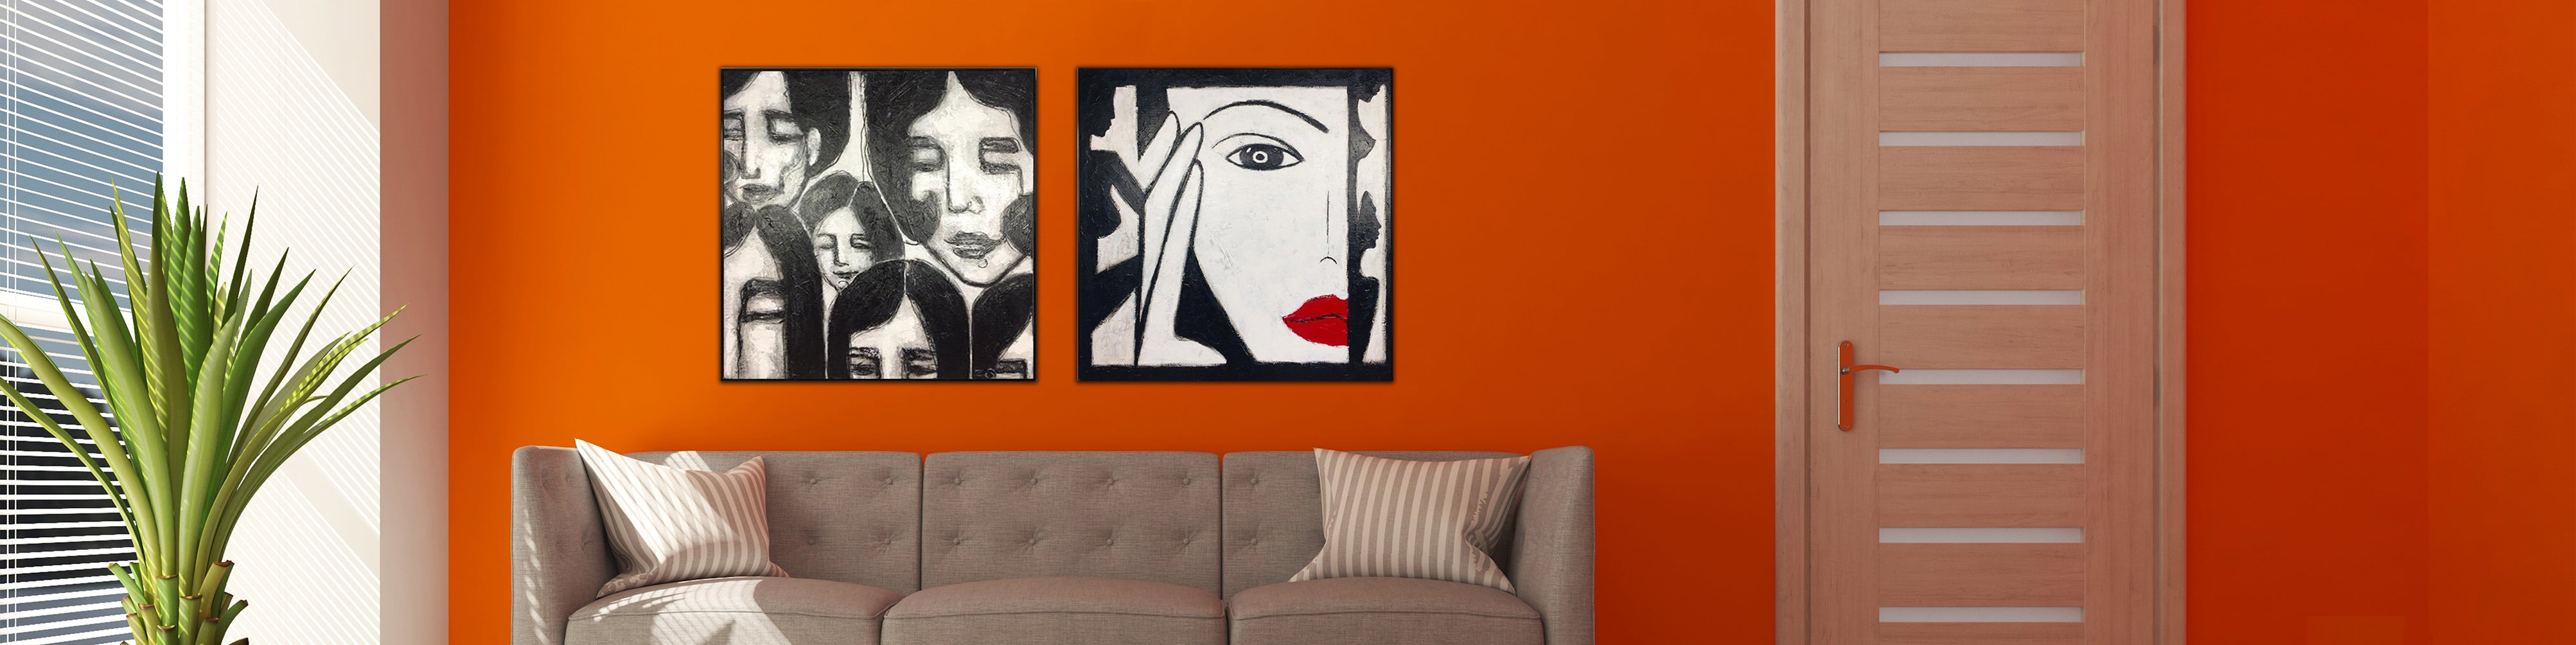 How to decorate a bedroom with abstract art